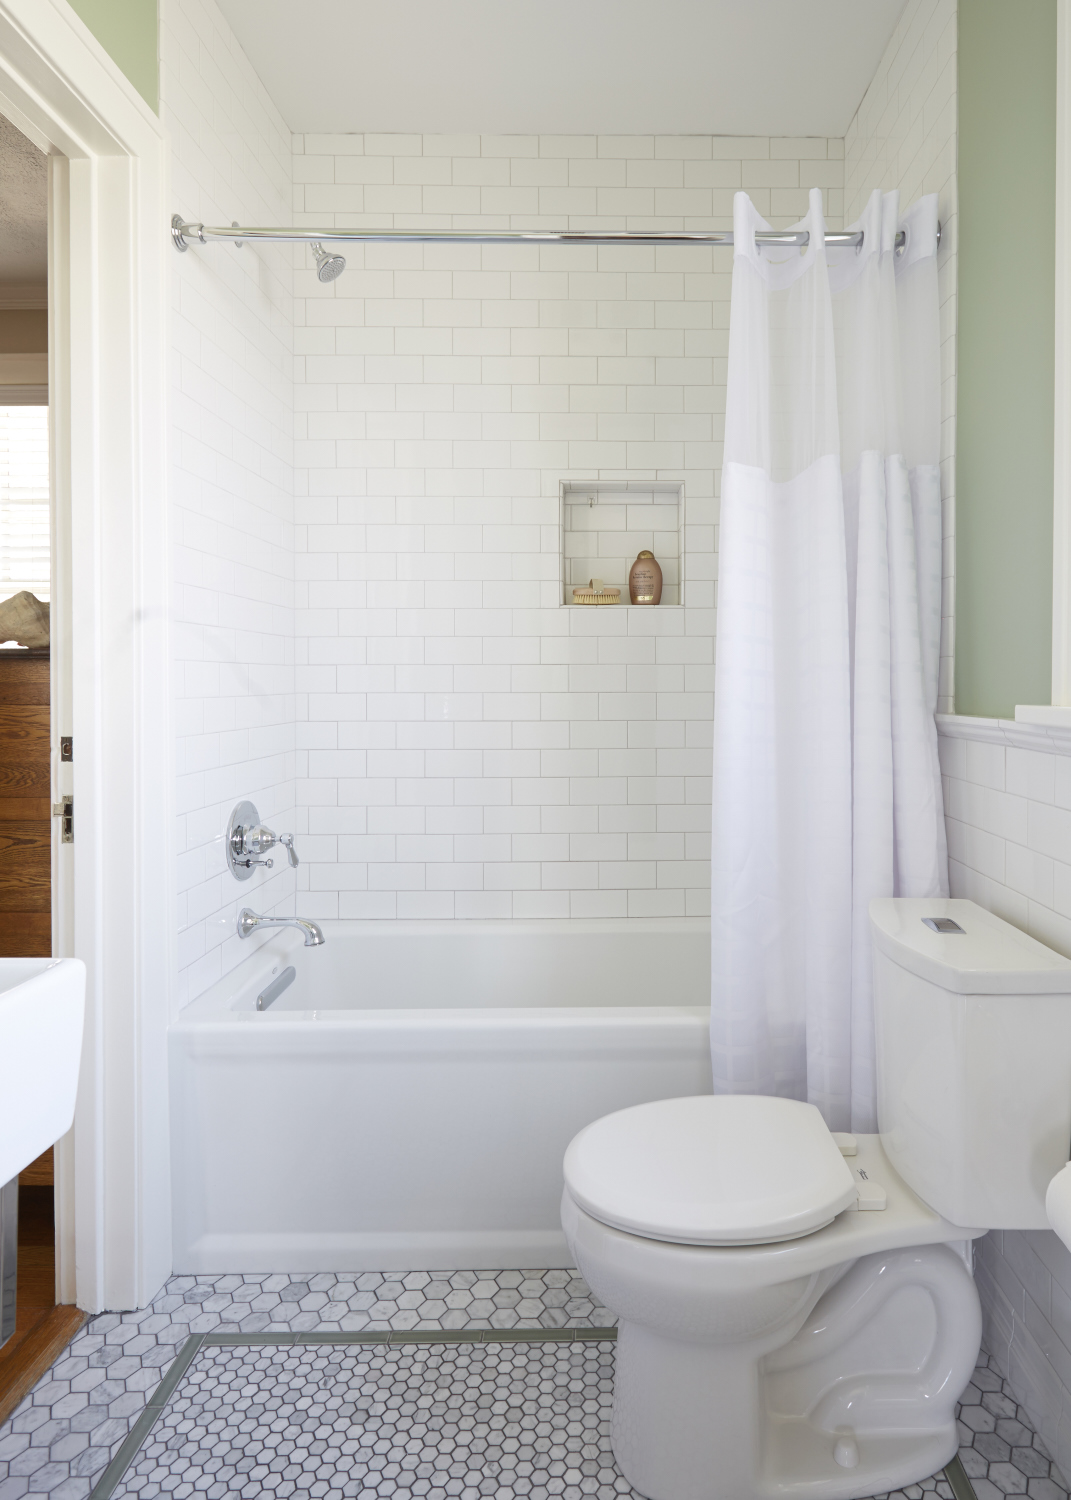 Arlington Heights Jack Jill Bathroom Remodel Catherine Schager Designs